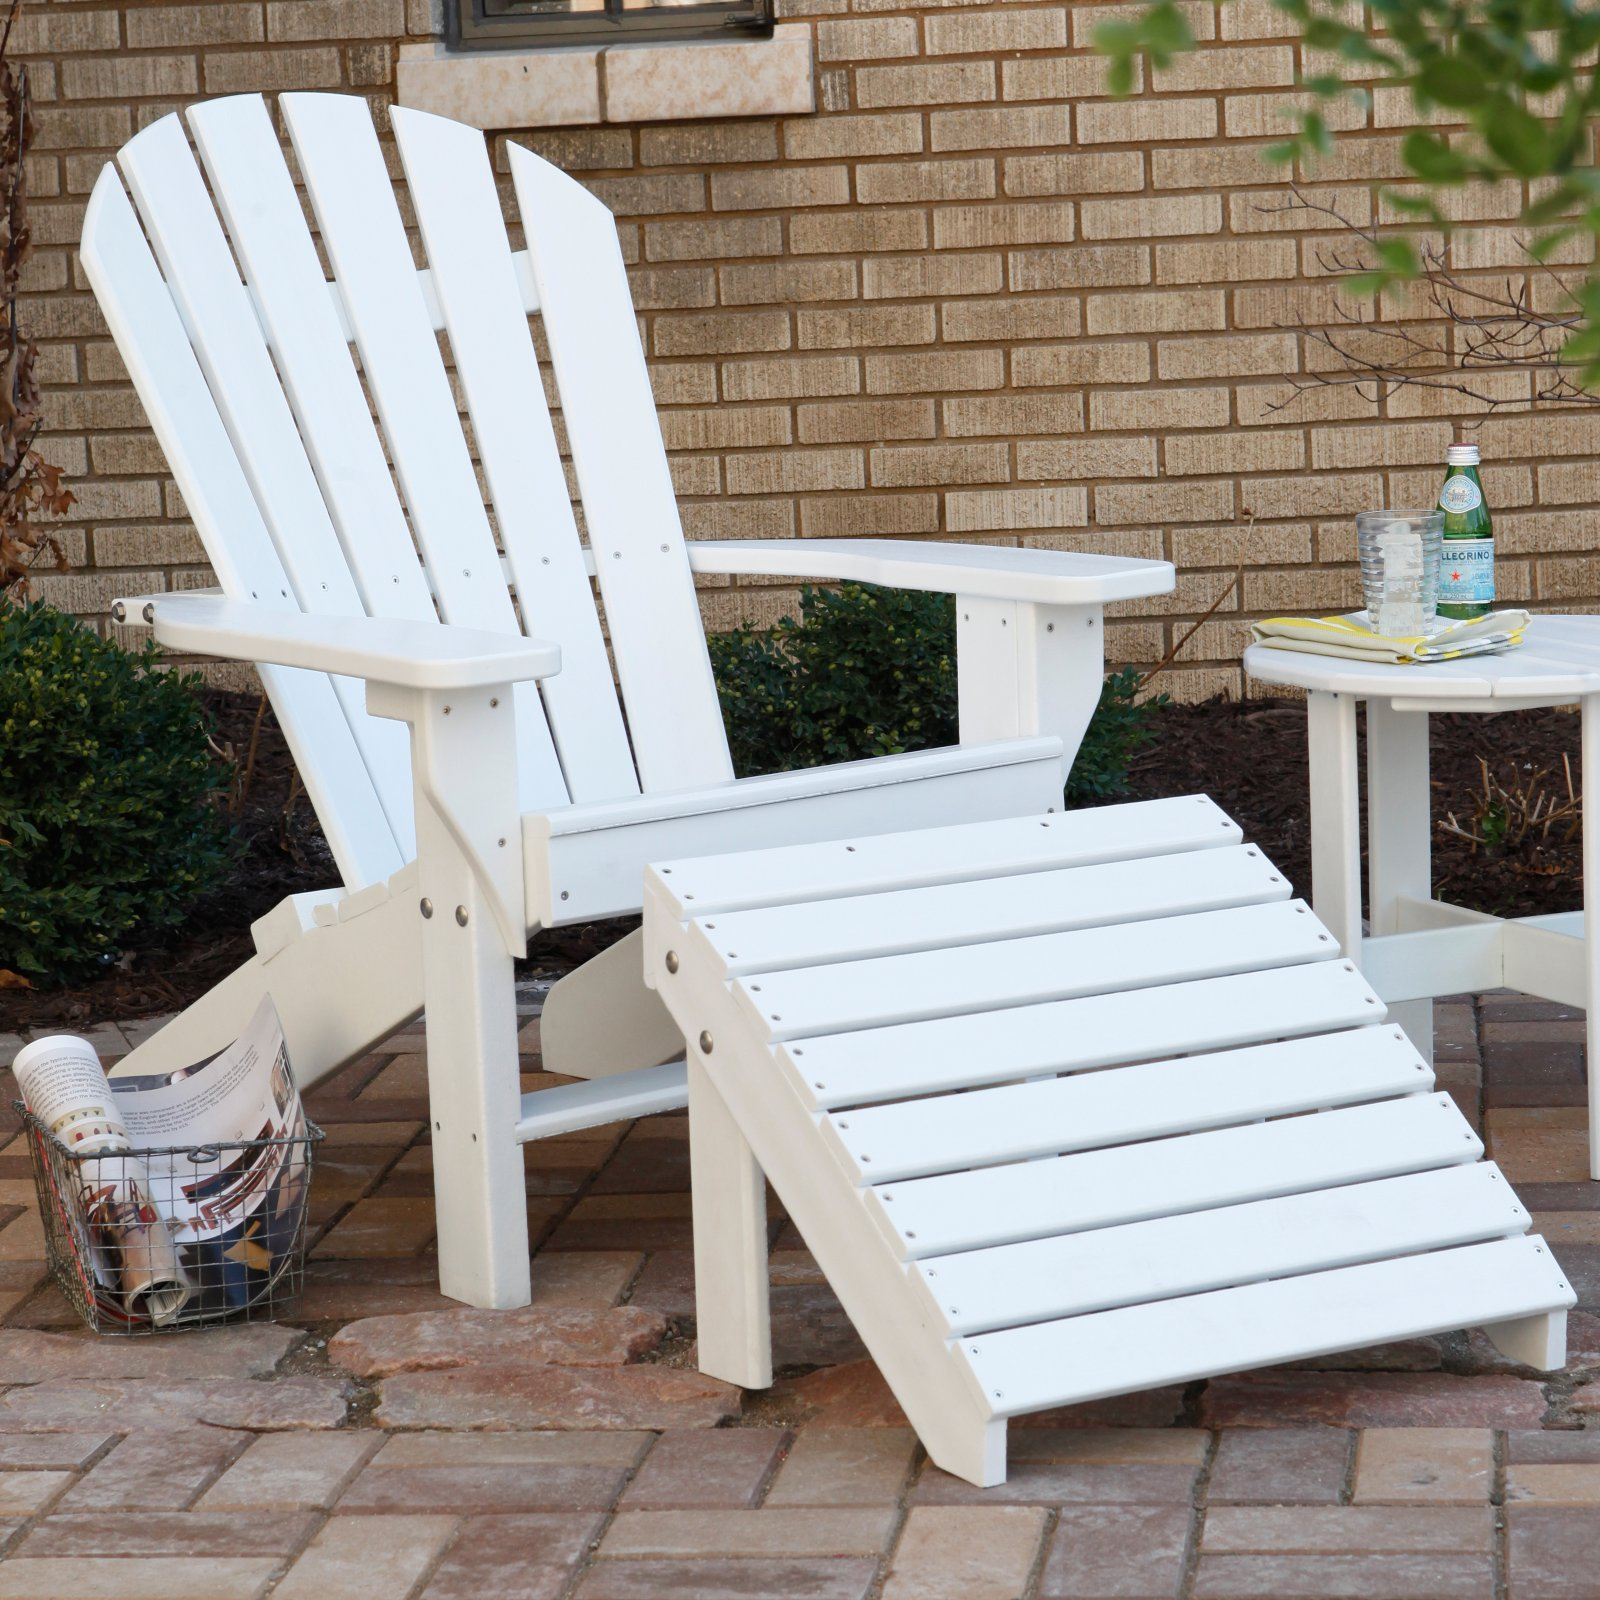 Jayhawk Plastics Recycled Plastic Seaside Adirondack Chair And Ottoman Set